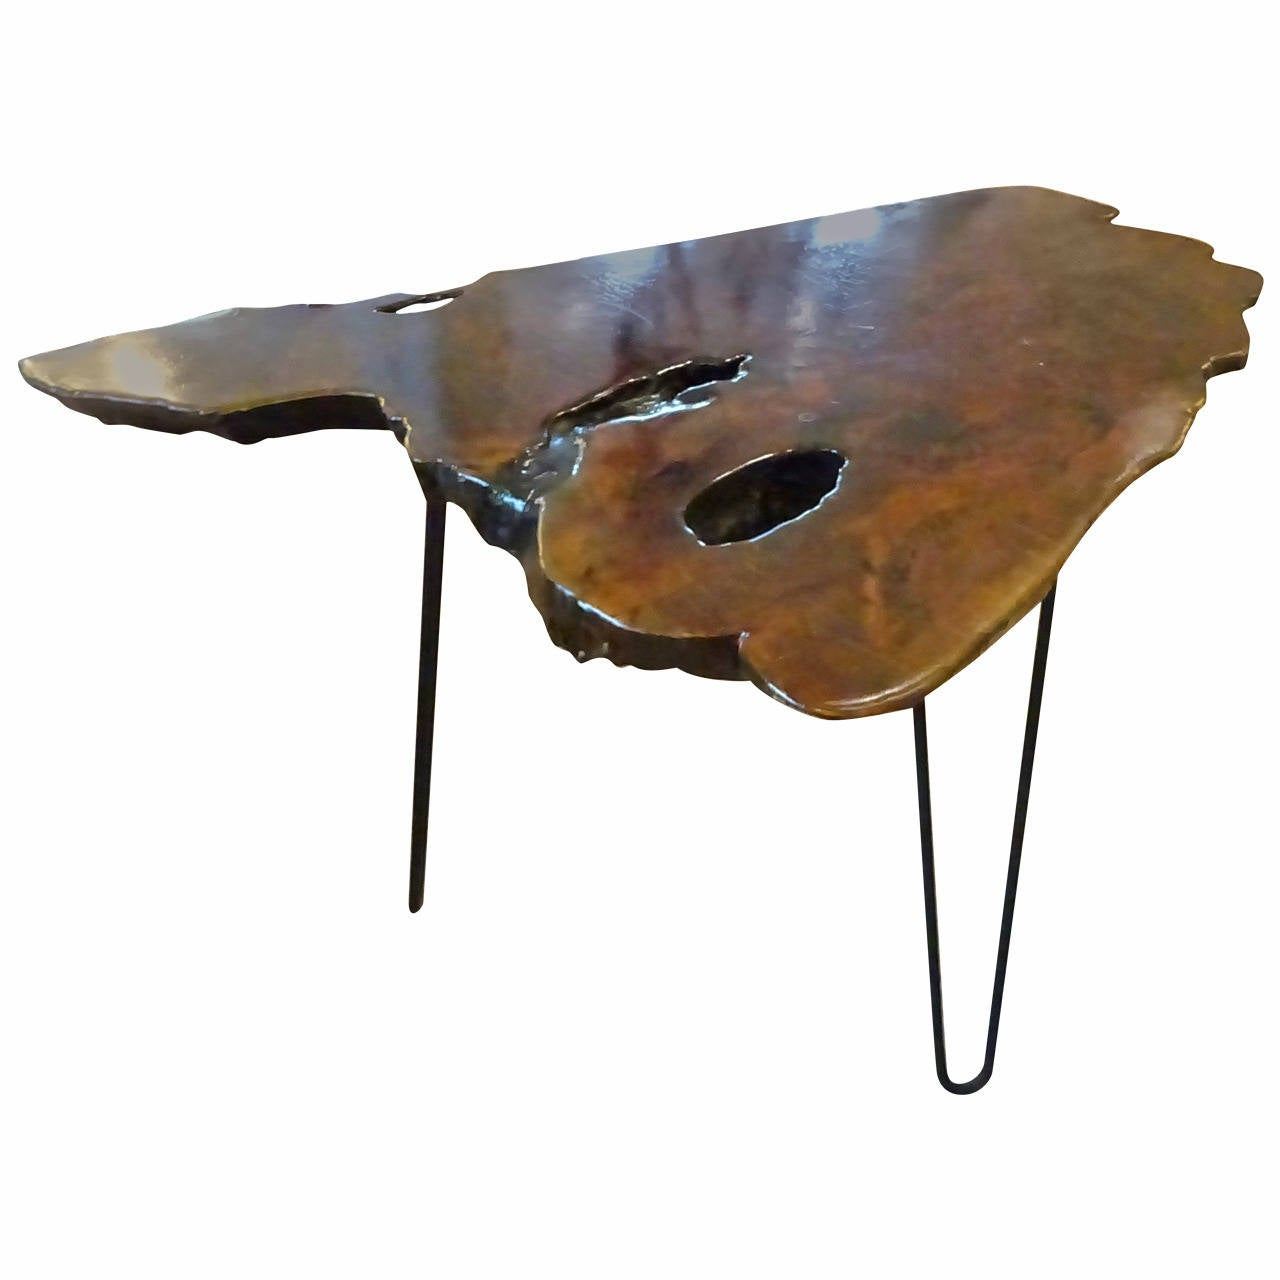 Hairpin Legs Table : Mid Century Organic Slab Table with Hairpin Legs at 1stdibs